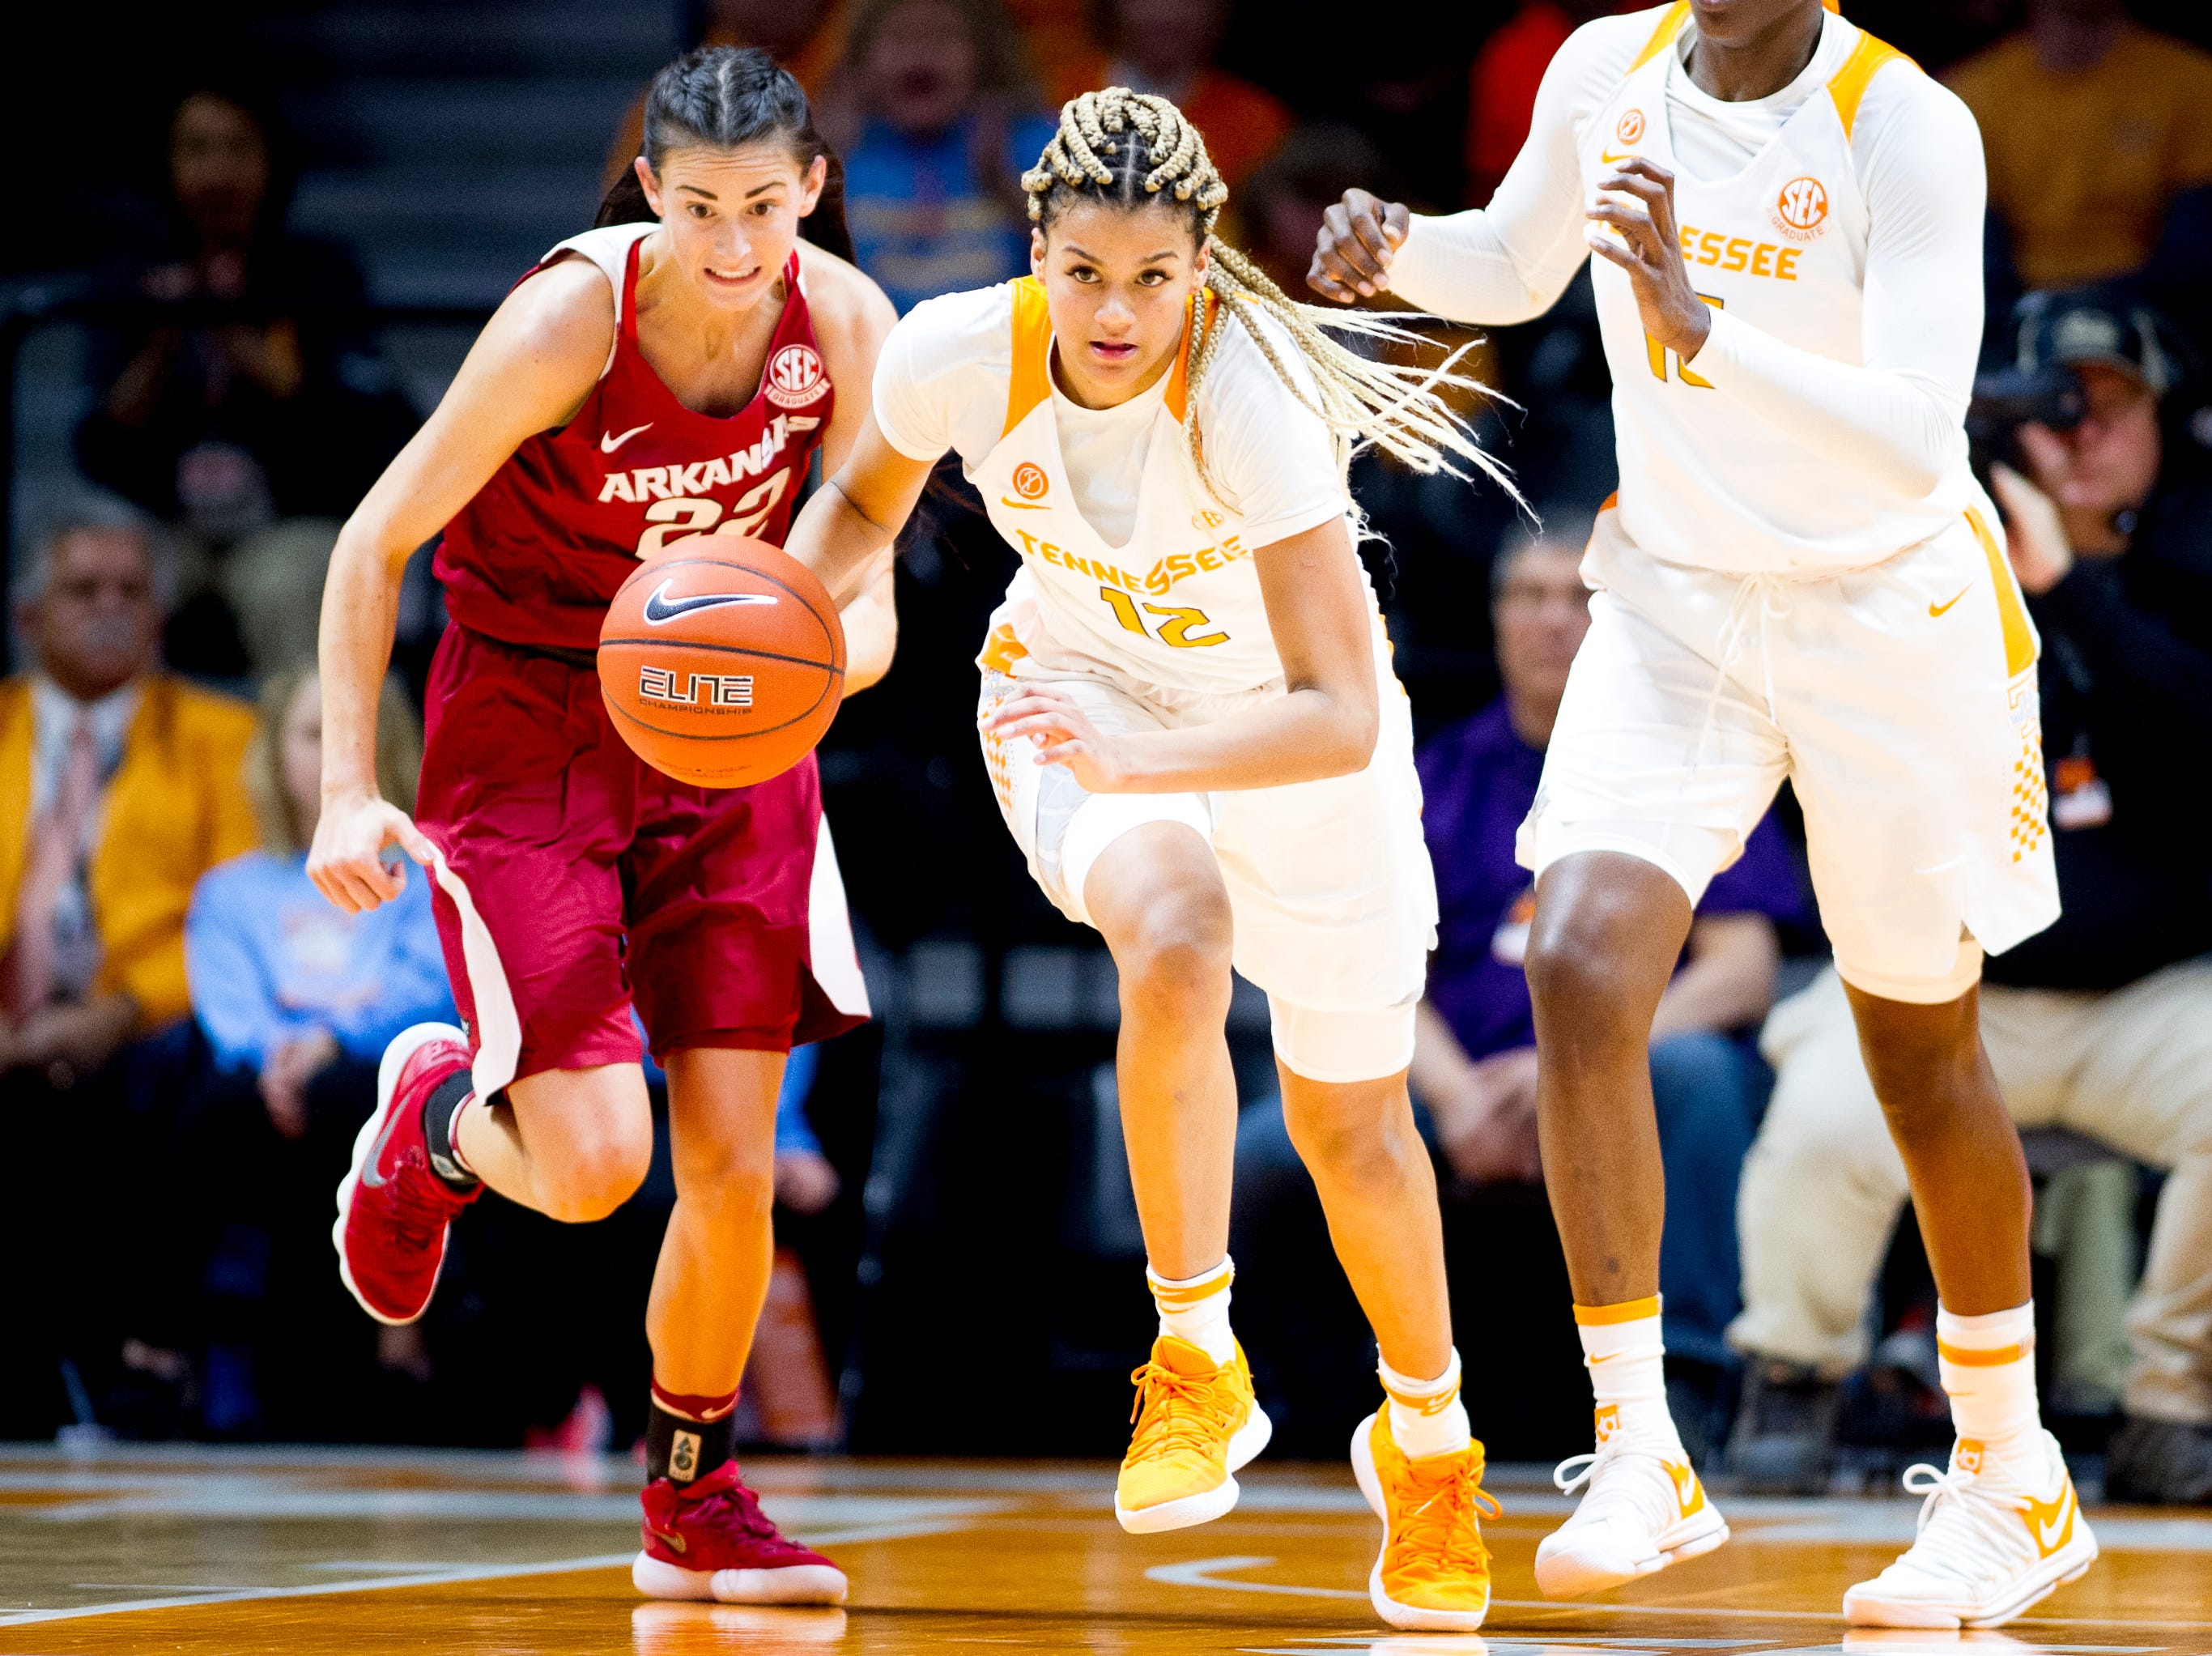 Tennessee guard/forward Rae Burrell (12) dribbles the ball down the court during a game between Tennessee and Arkansas at Thompson-Boling Arena in Knoxville, Tennessee on Monday, January 21, 2019.